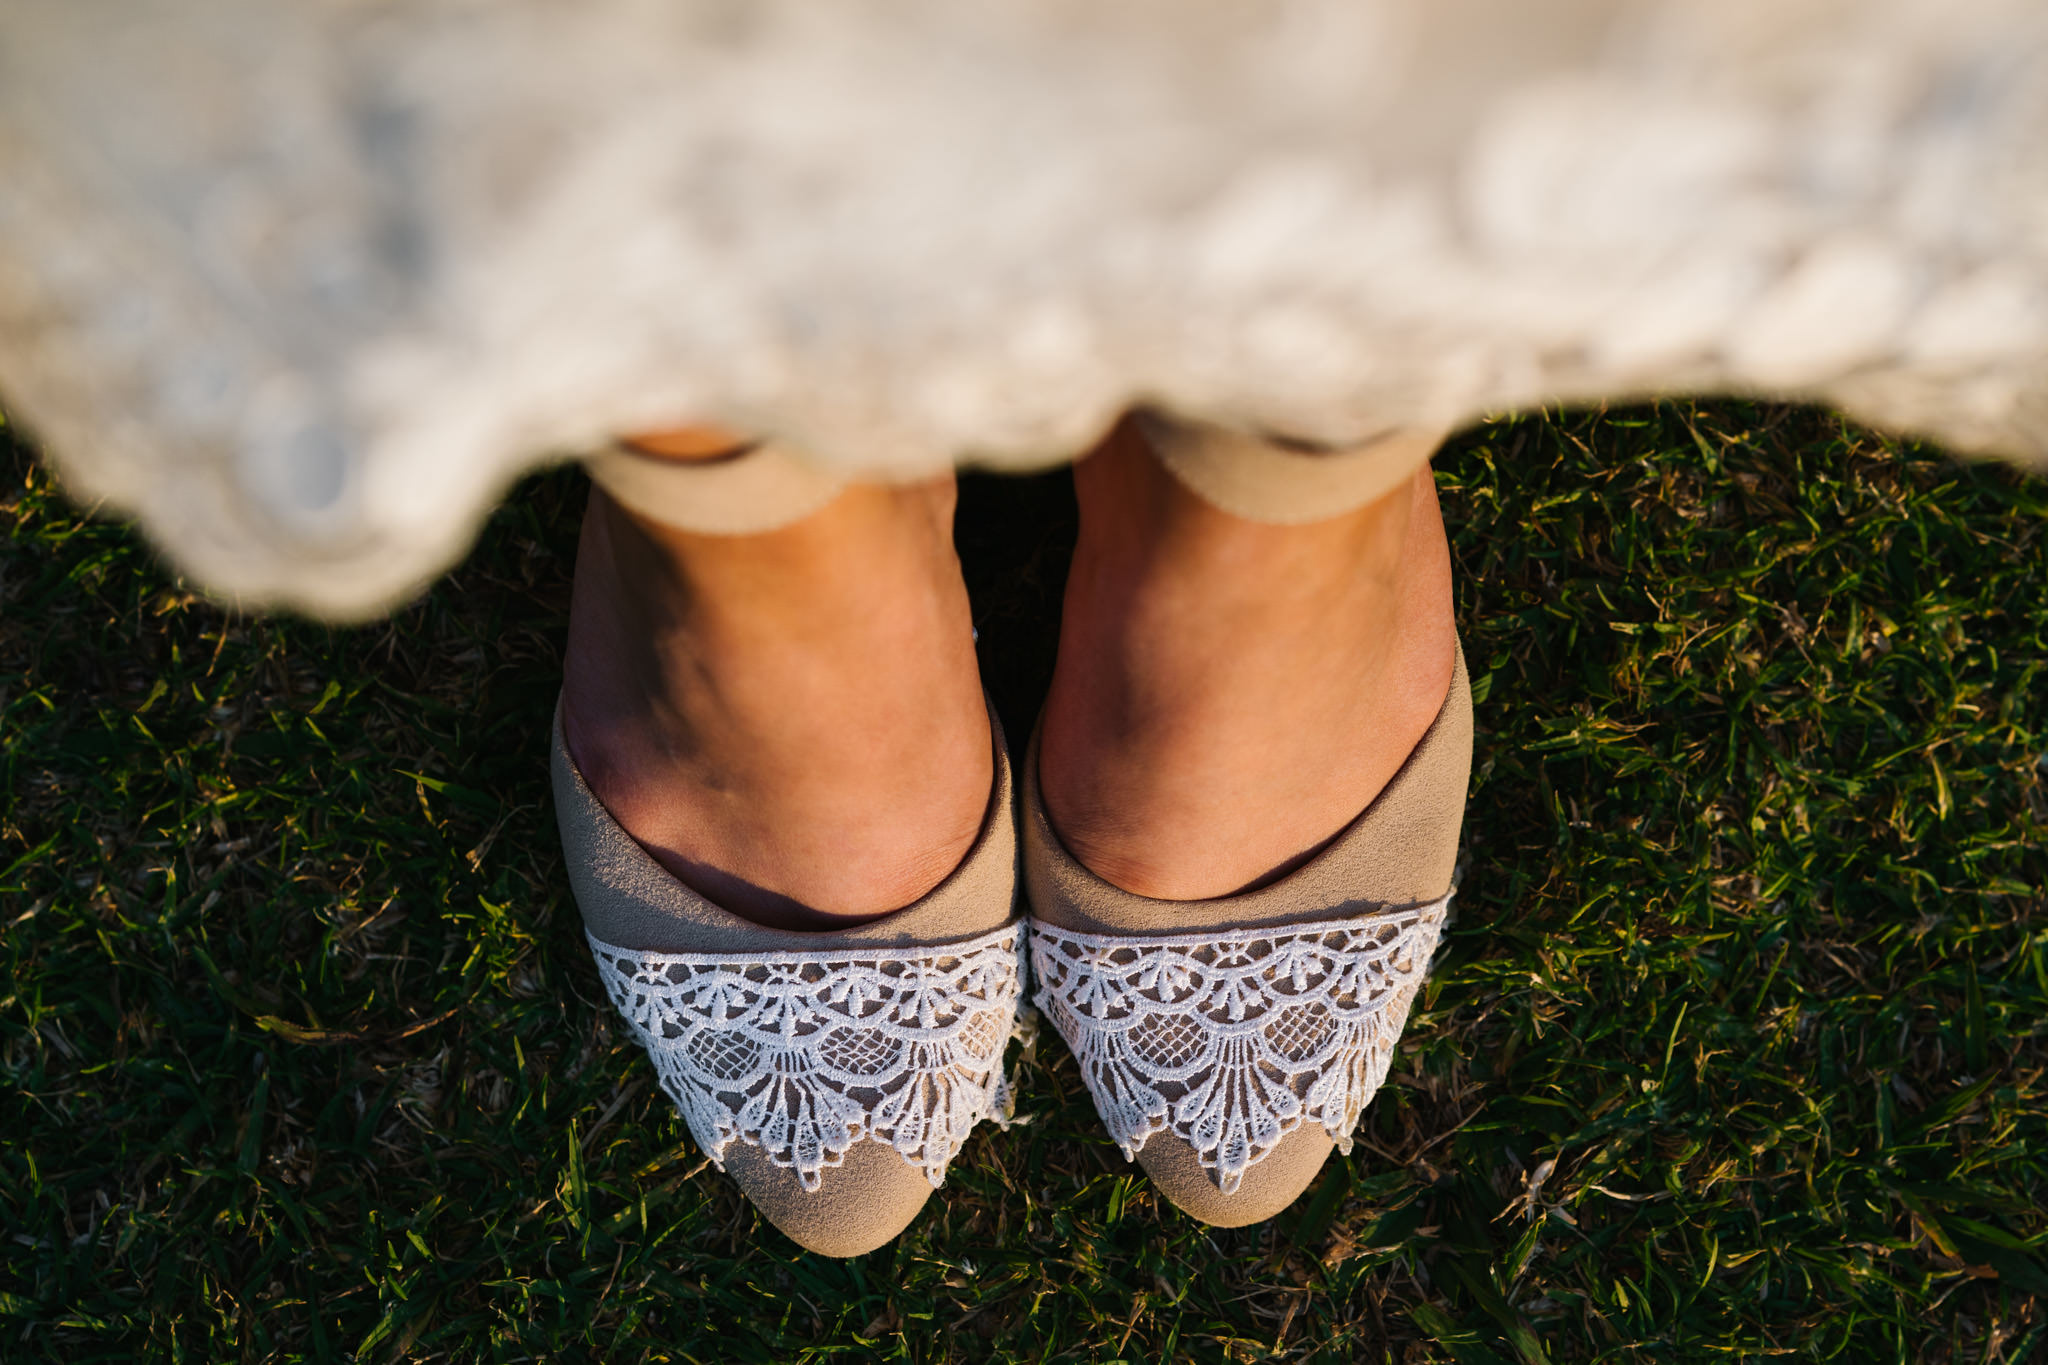 Detail of lace on the bride's beige shoes